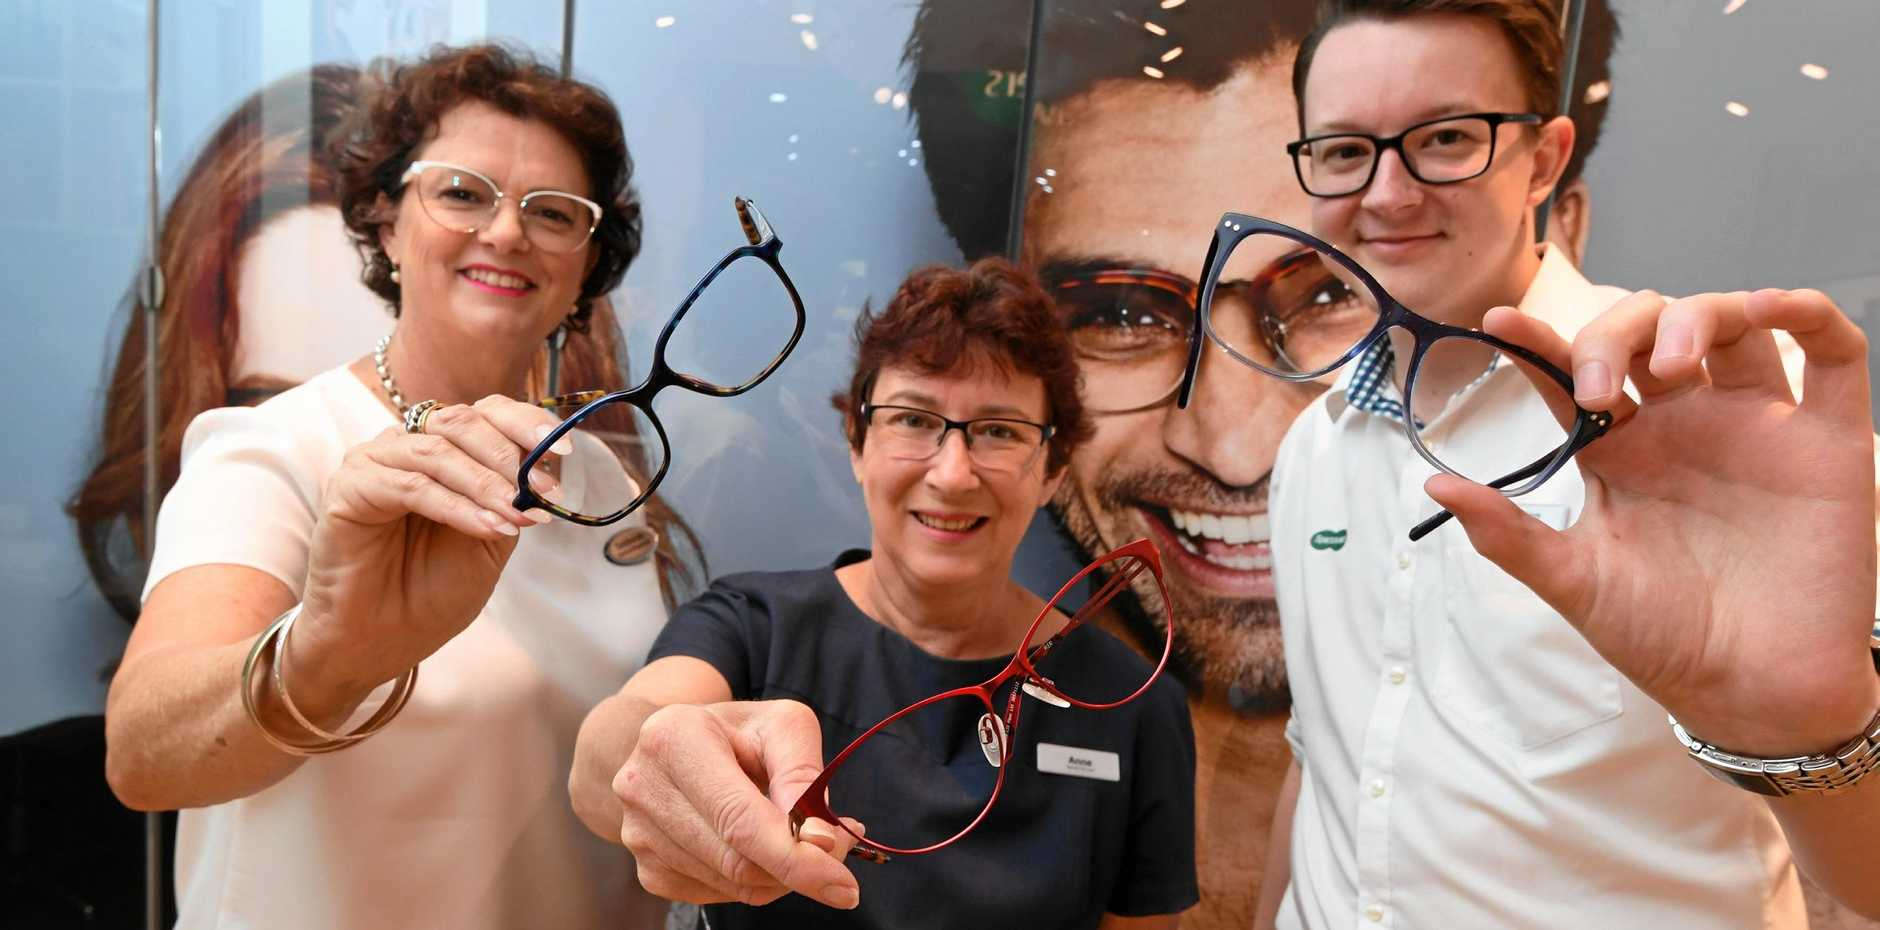 SAVING EYESIGHT: Deborah Smith, Anne Burrows-Jung and Brandon Lee with donated second hand glasses to be reused.